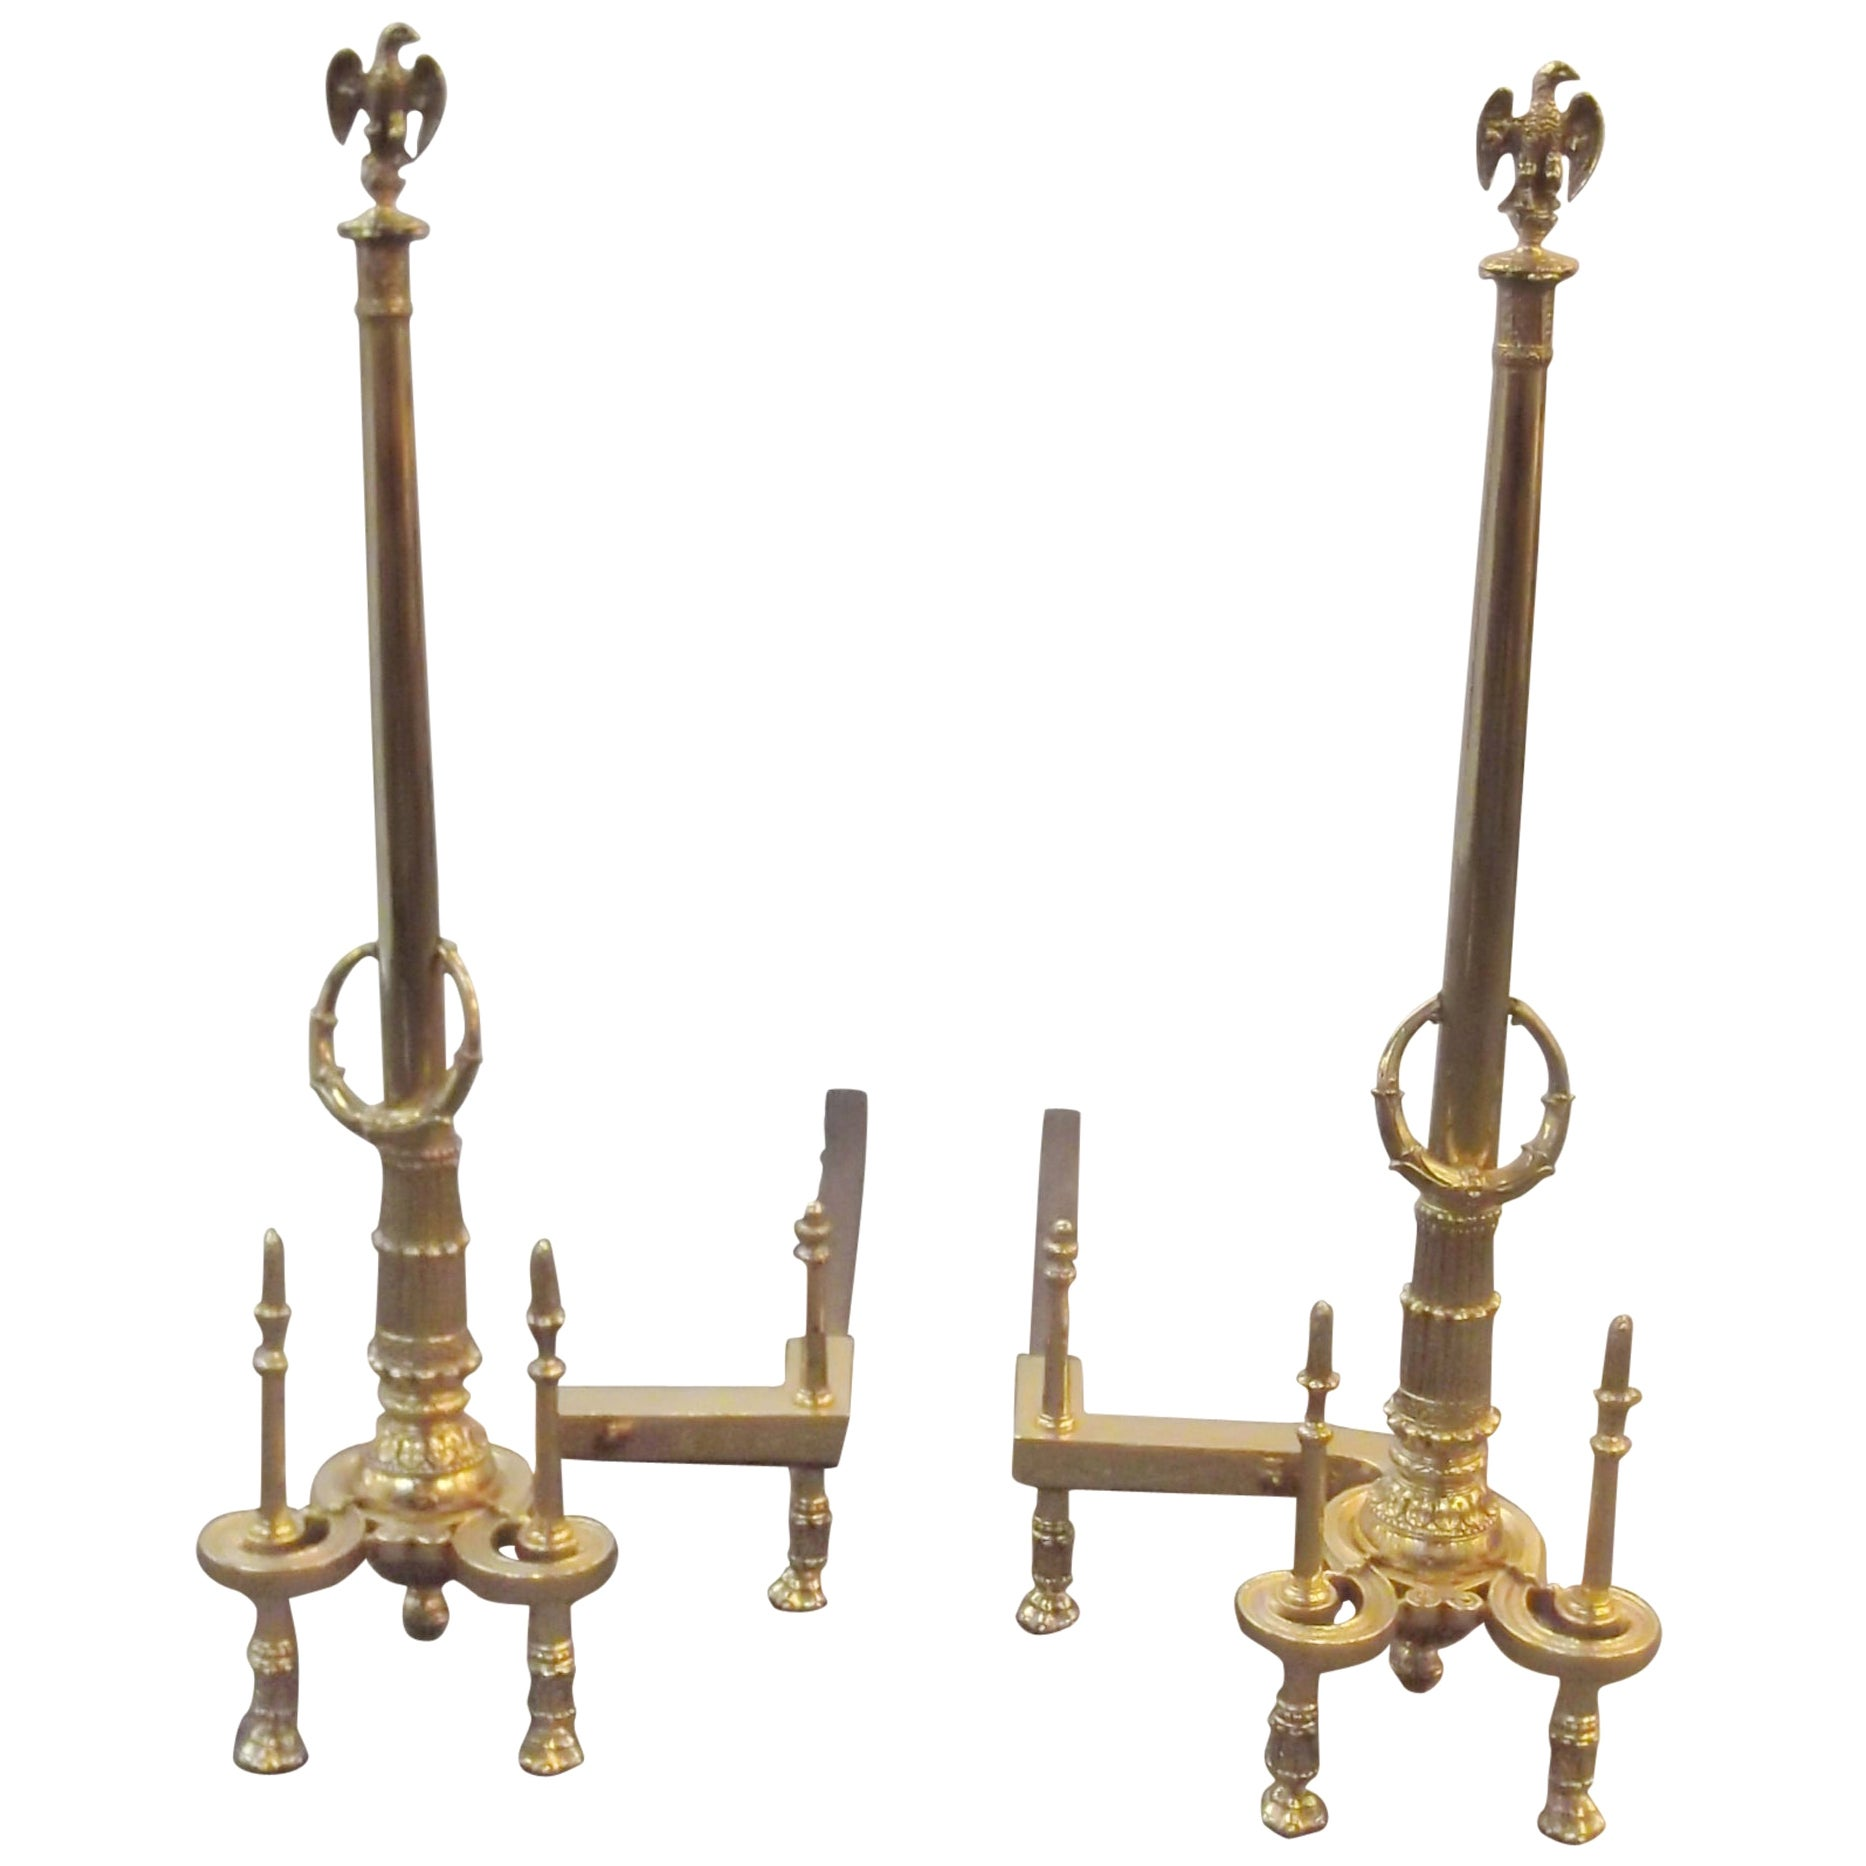 Pair of Louis XV Style Tall Andirons